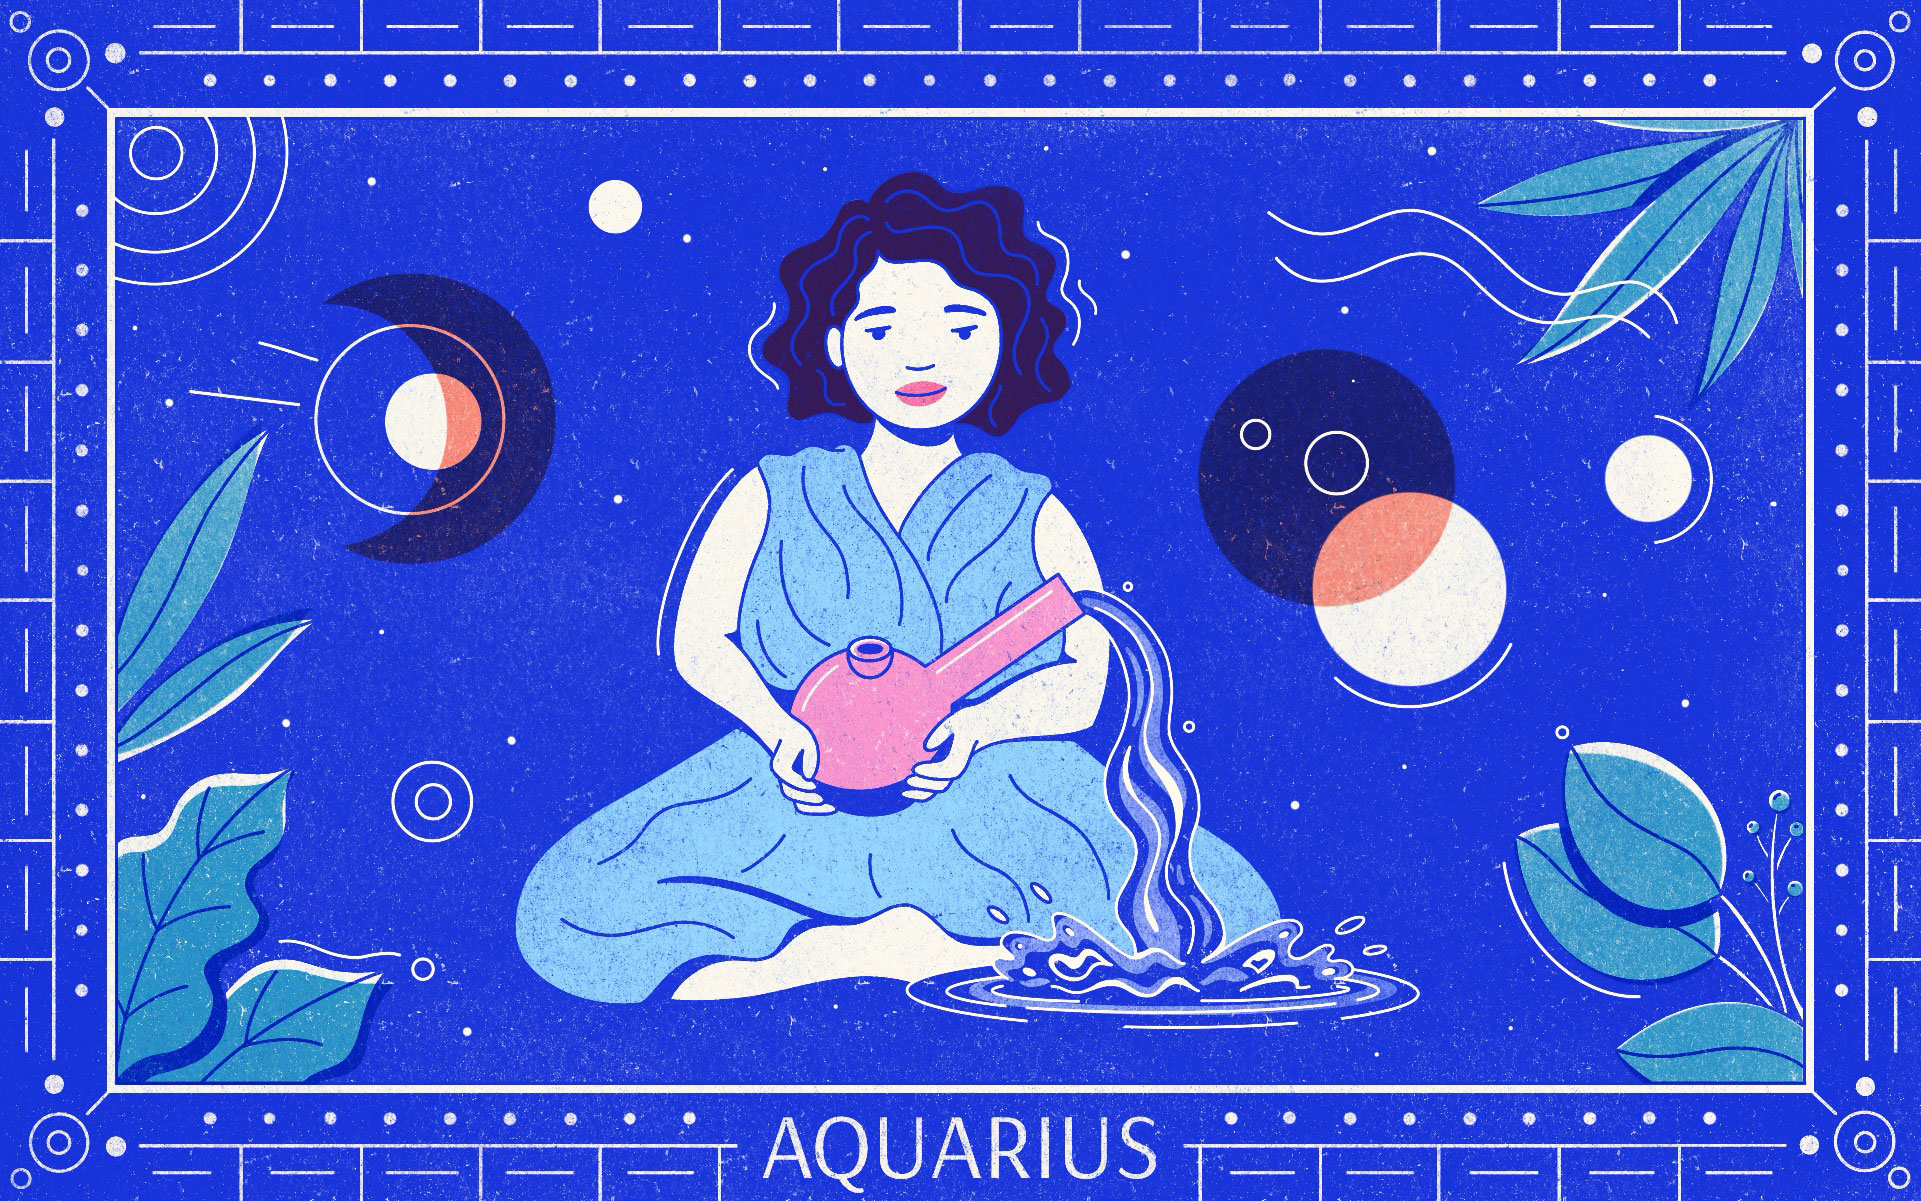 AQUARIUS web Gillian Levine - Star signs and cannabis strains: July 2020 horoscopes